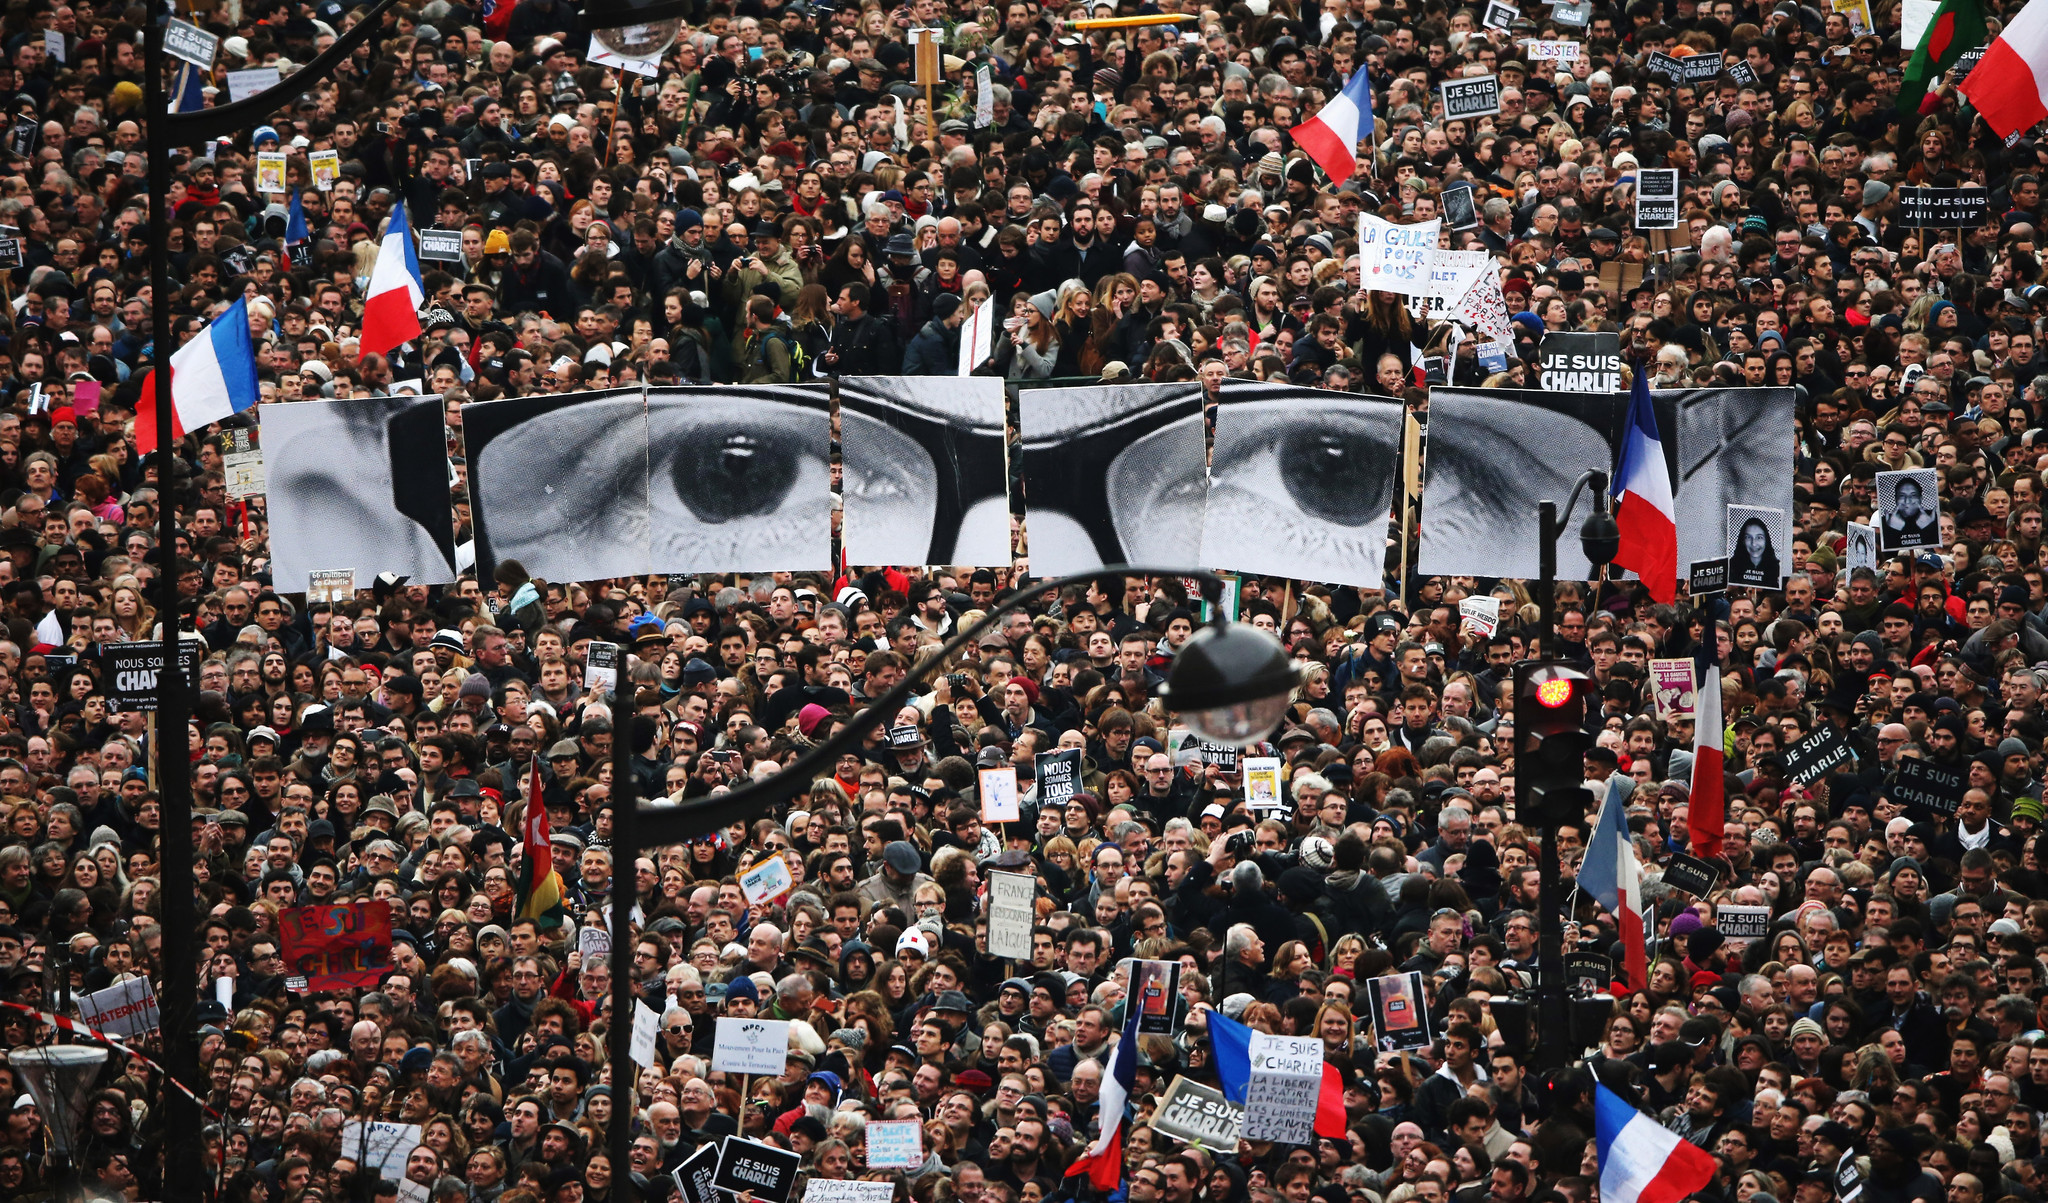 Demonstrators make their way along Boulevard Voltaire in a unity rally in Paris following terrorist attacks.